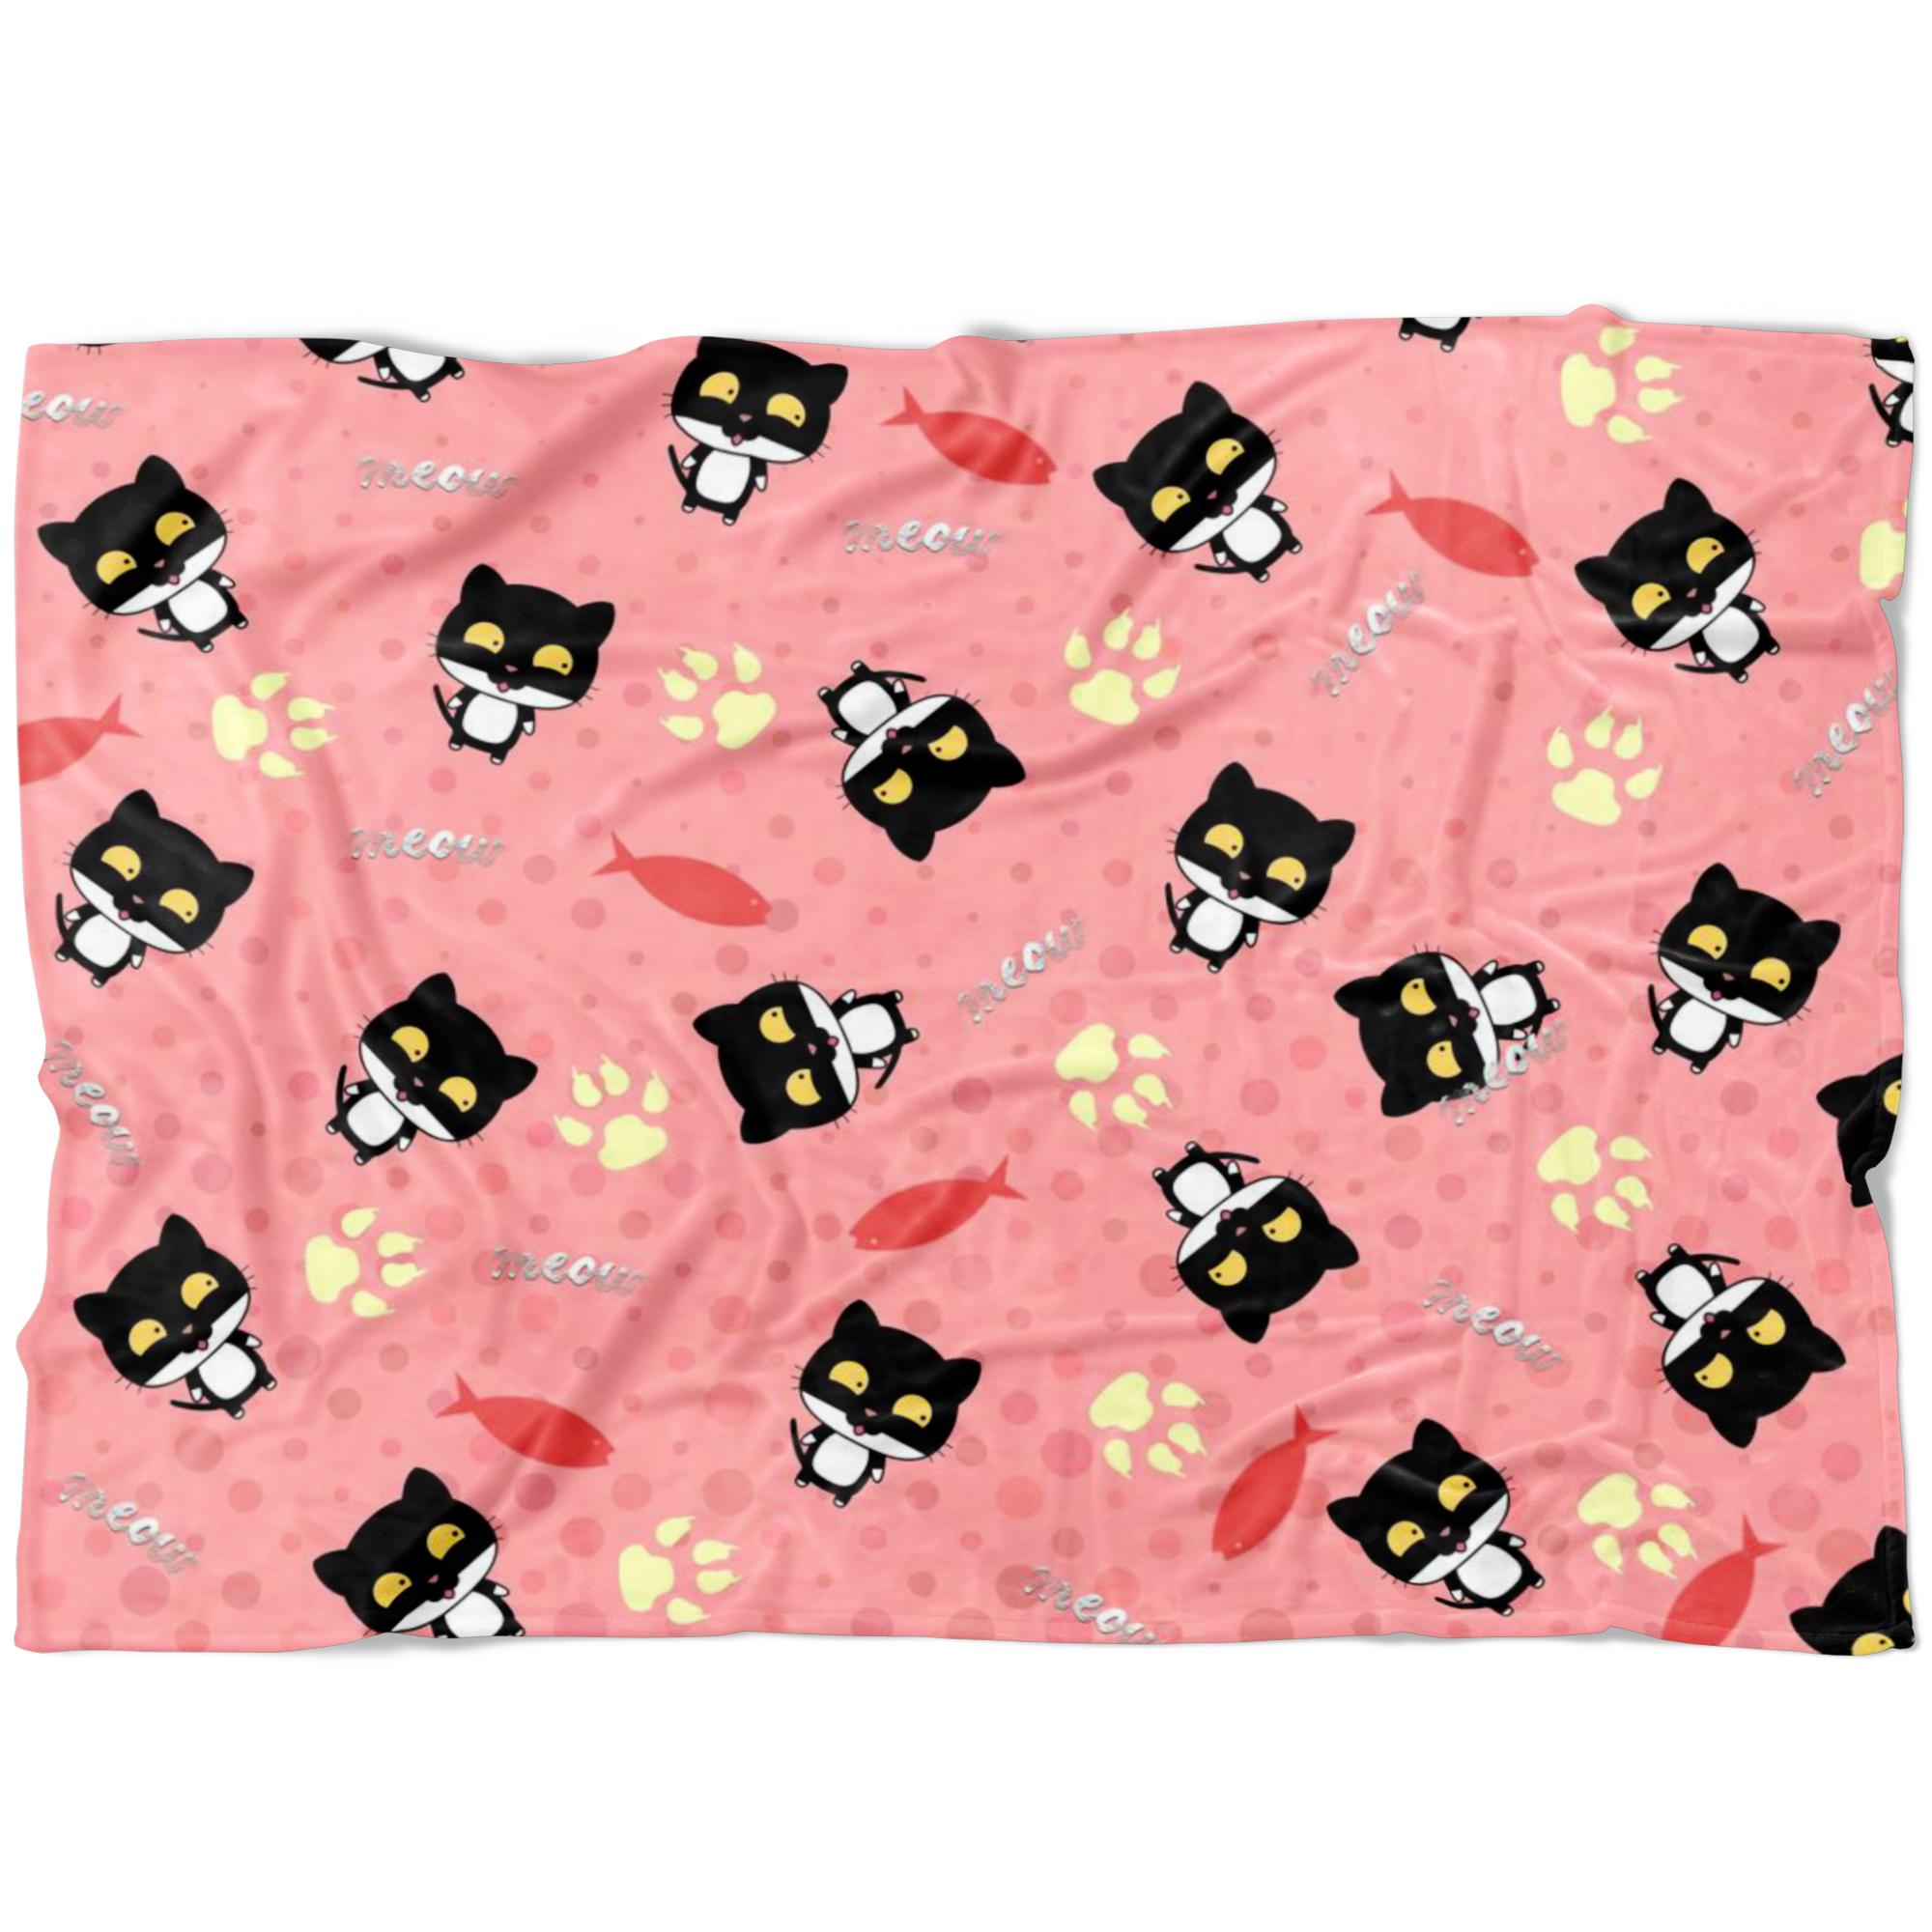 Black cat Fleece Blanket-Blankets-I love Veterinary